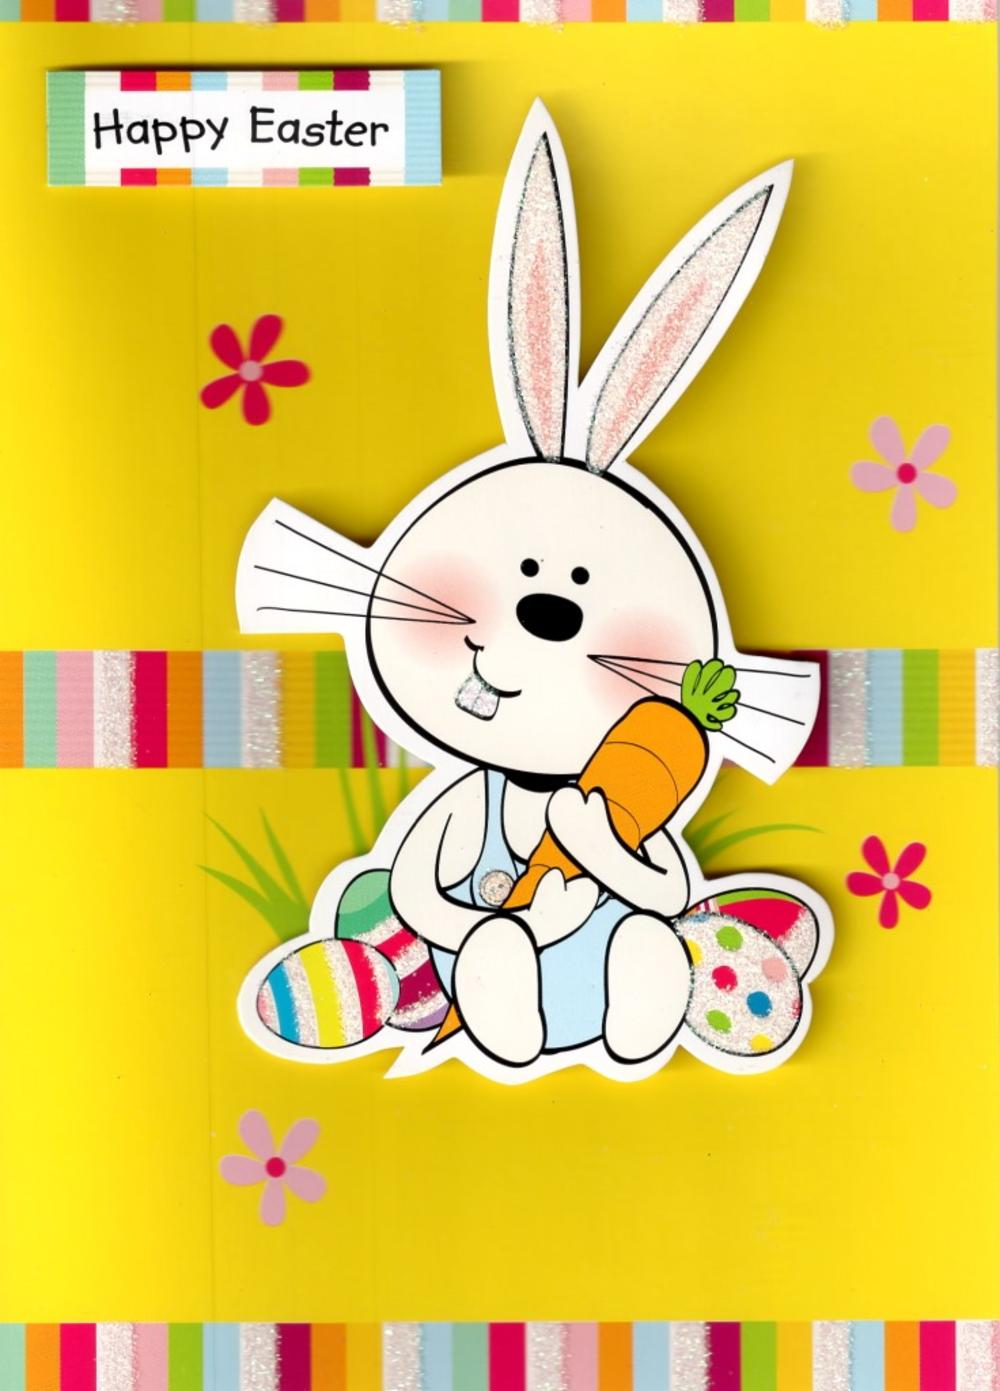 Happy Easter Cute Easter Bunny Rabbit Card | Cards | Love ...